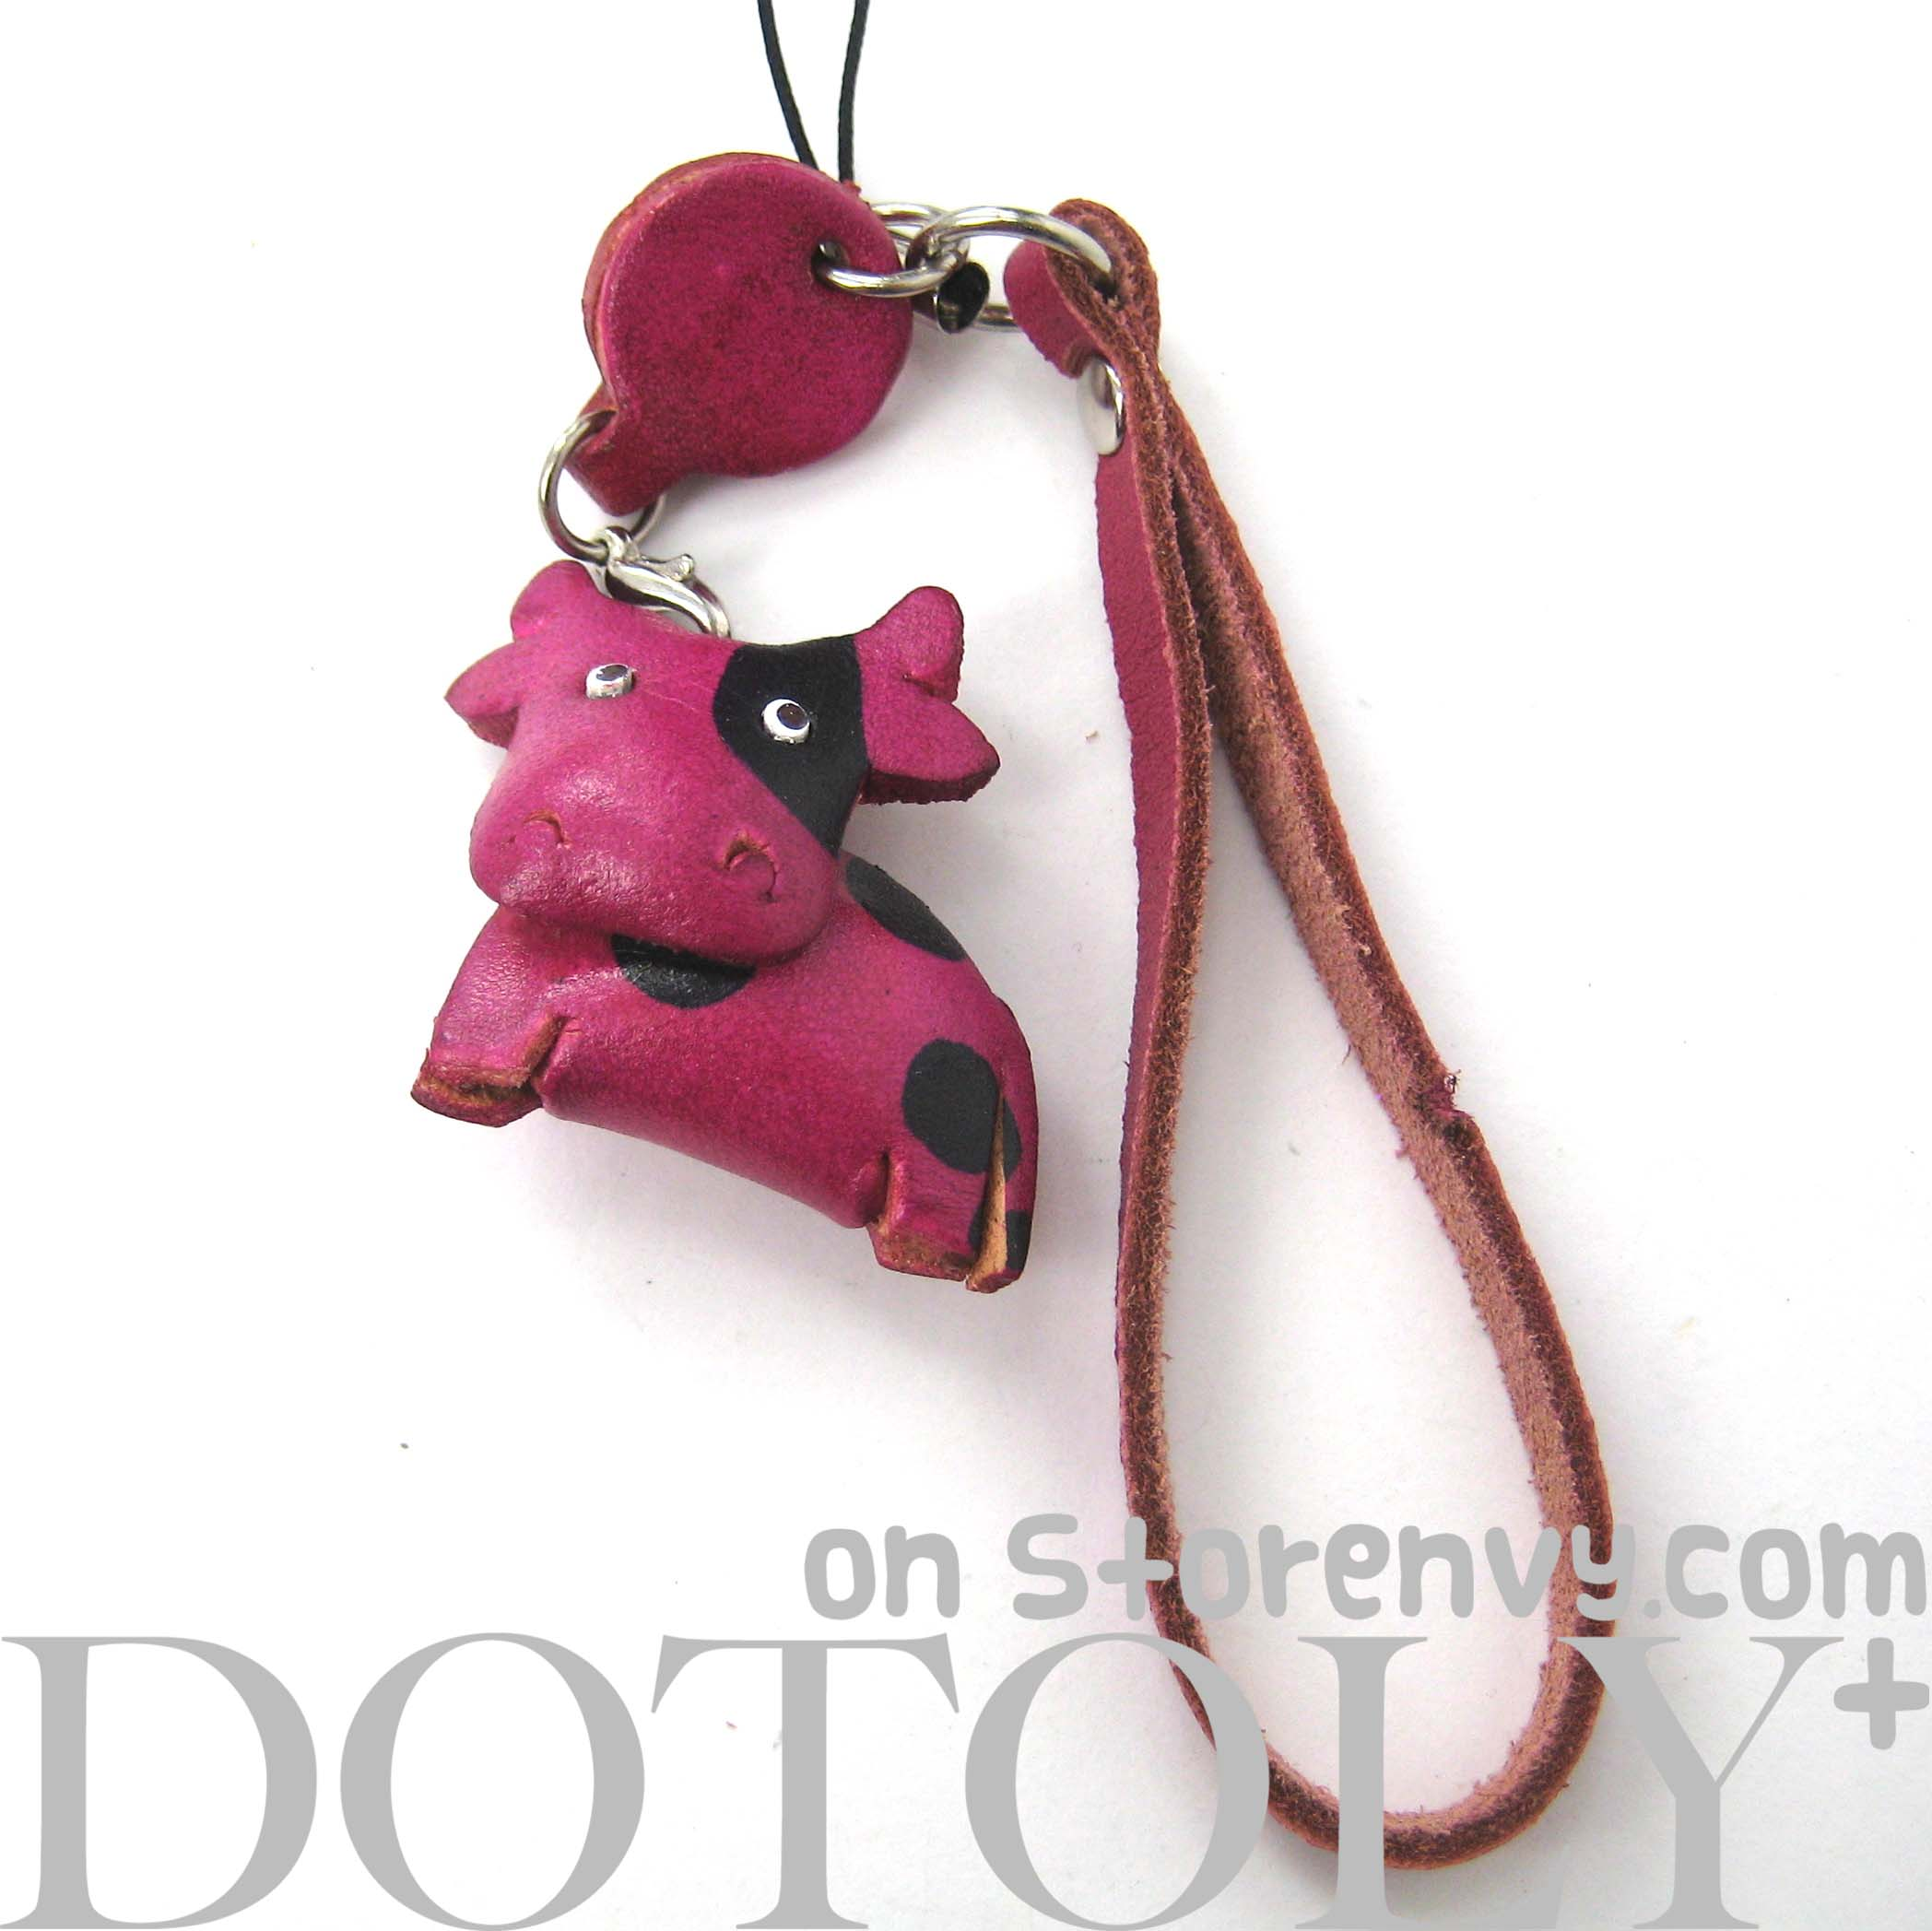 faux-leather-cow-bull-animal-charm-necklace-with-mobile-strap